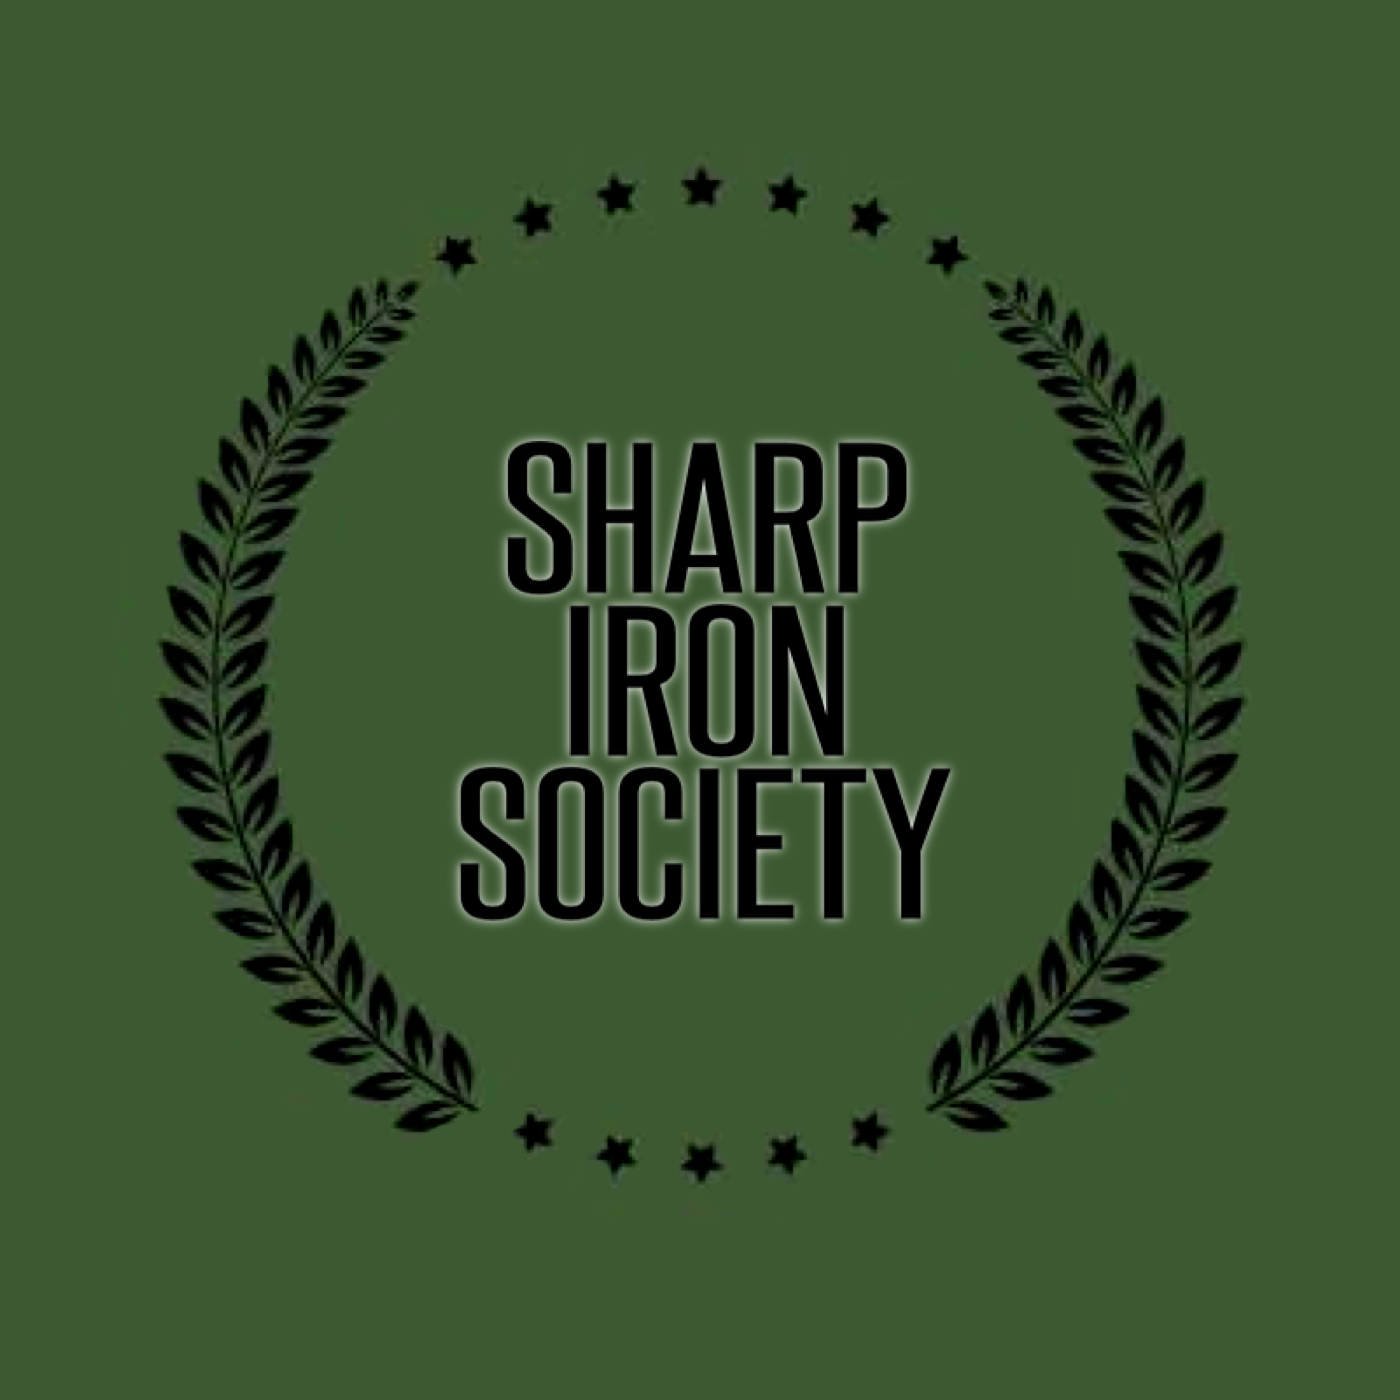 Sharp Iron Society